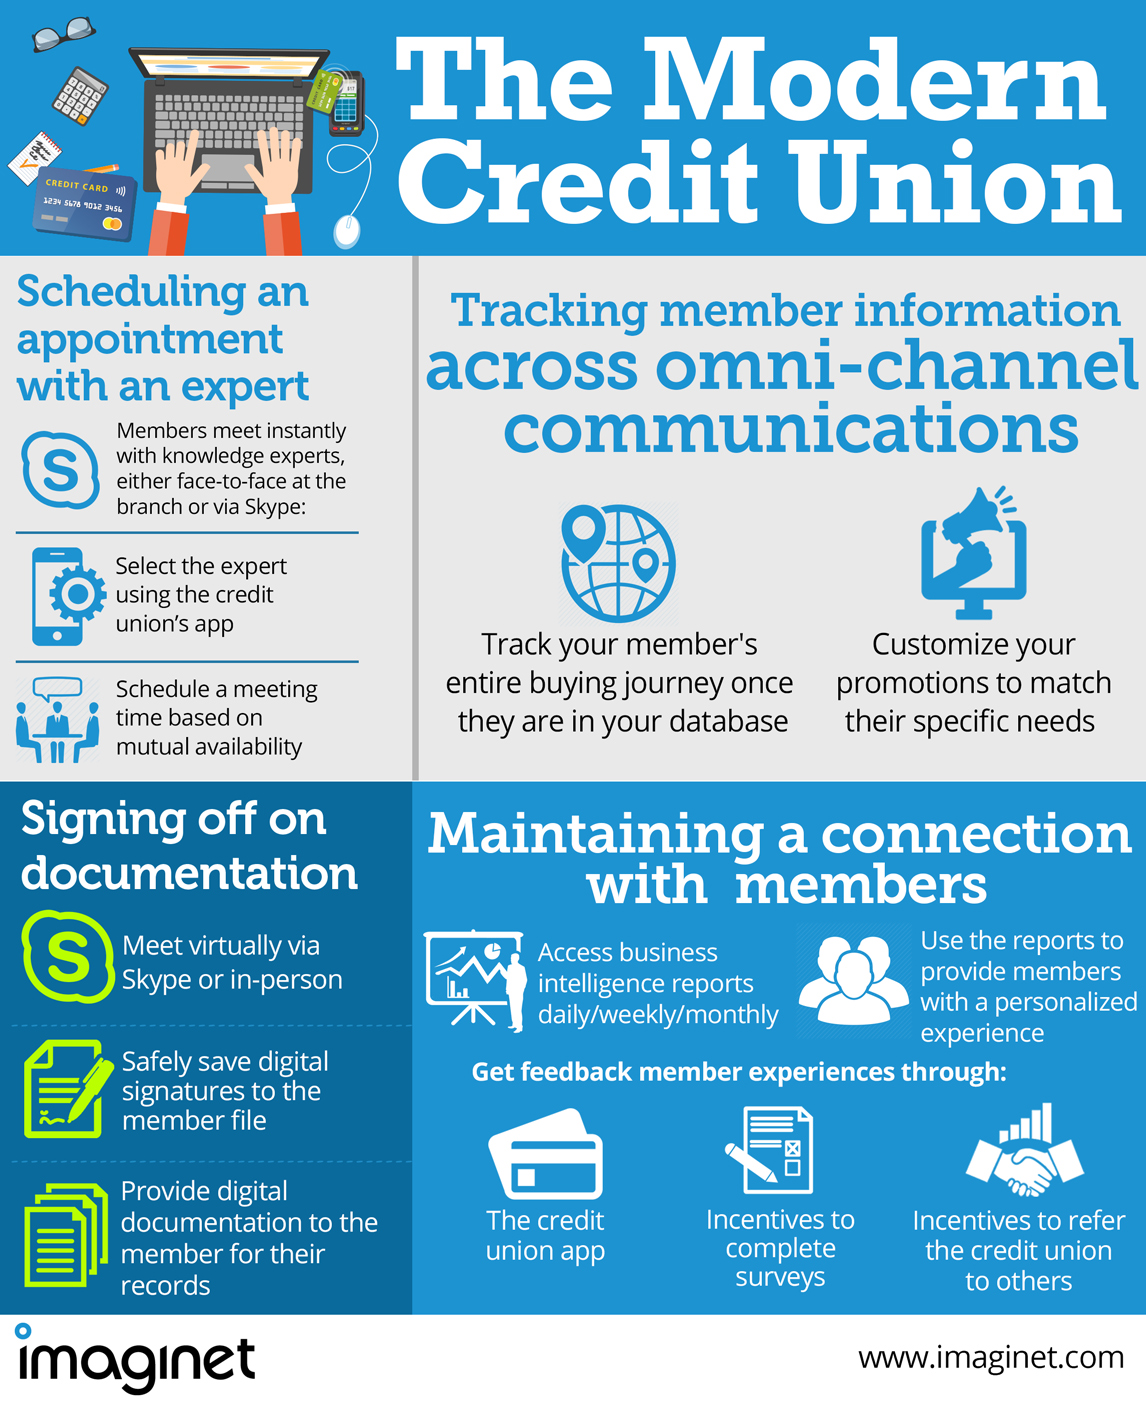 Imaginet_The Modern Credit Union infographic